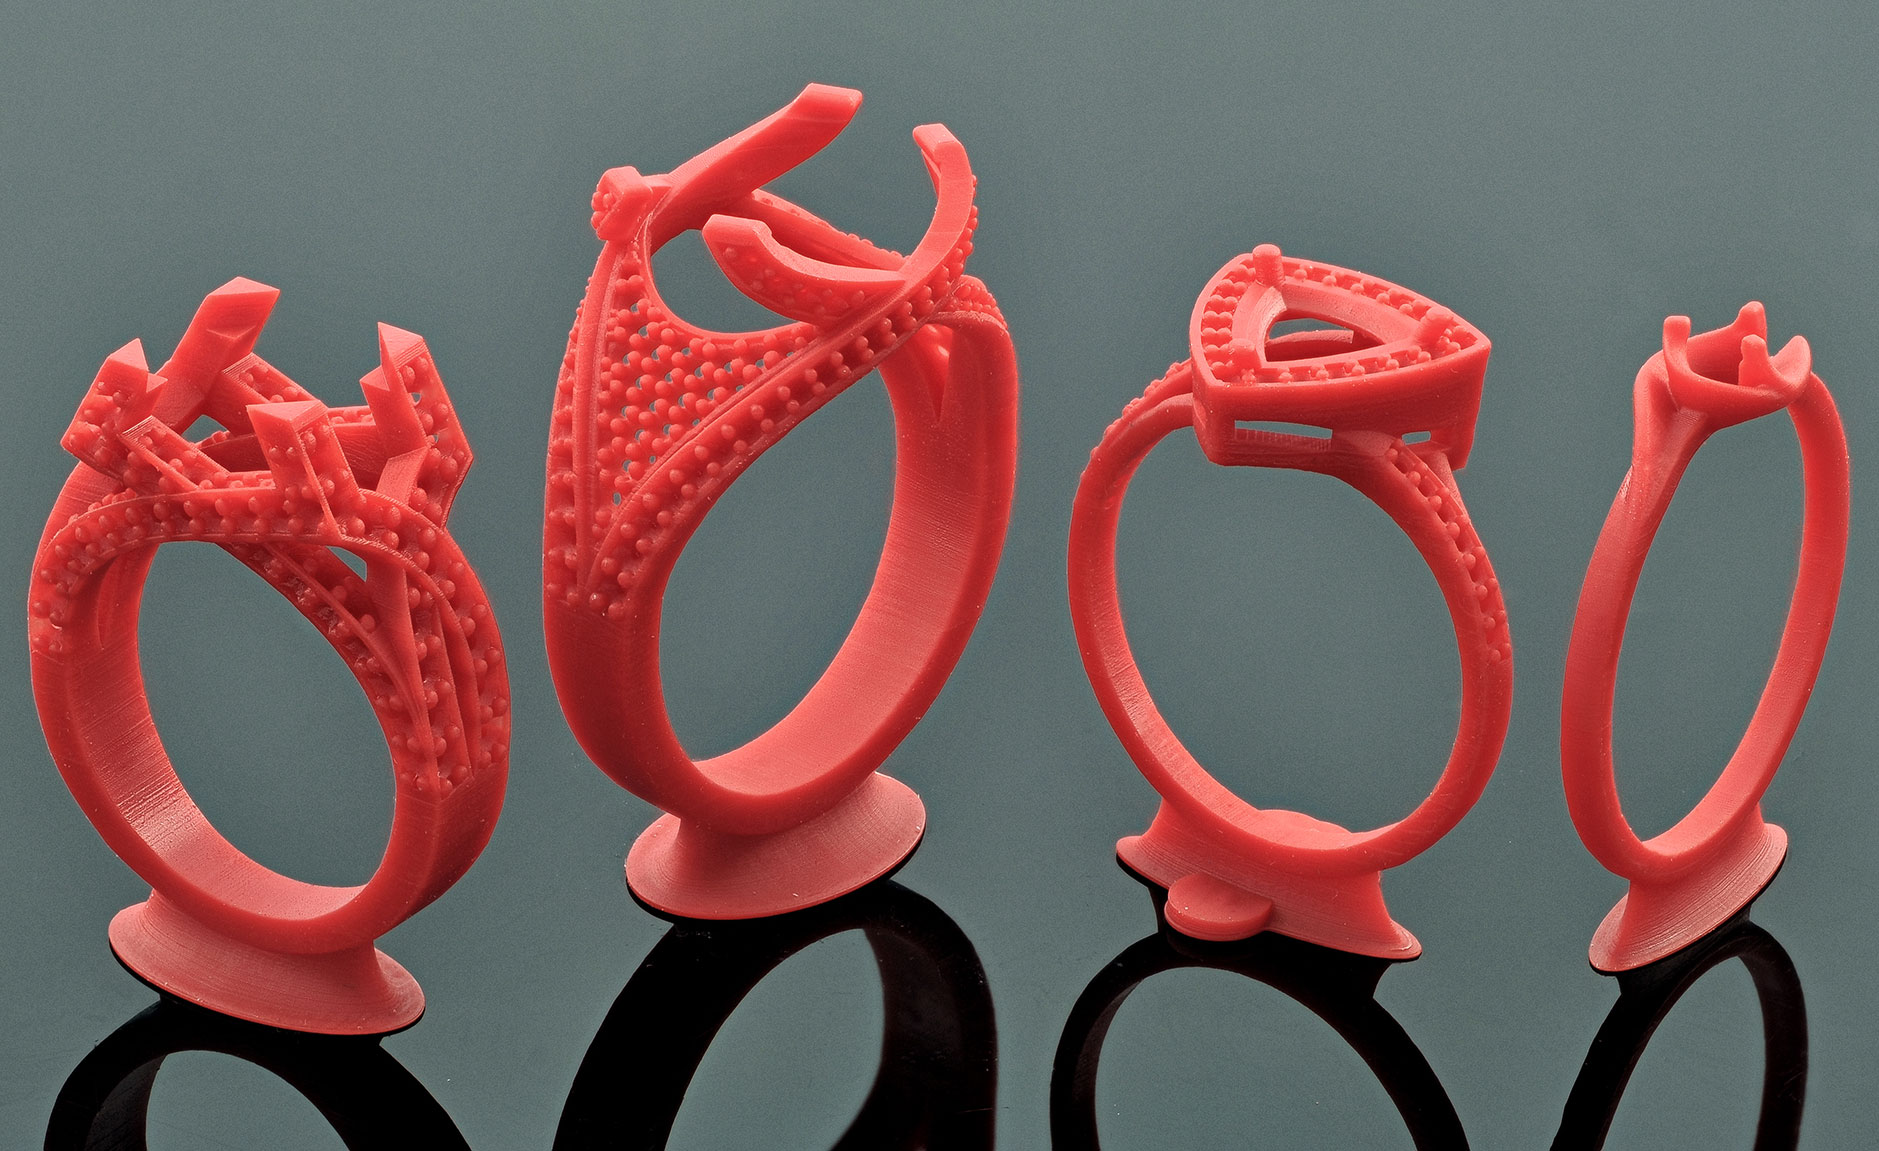 Ring Samples - Solus DLP 3d Printer